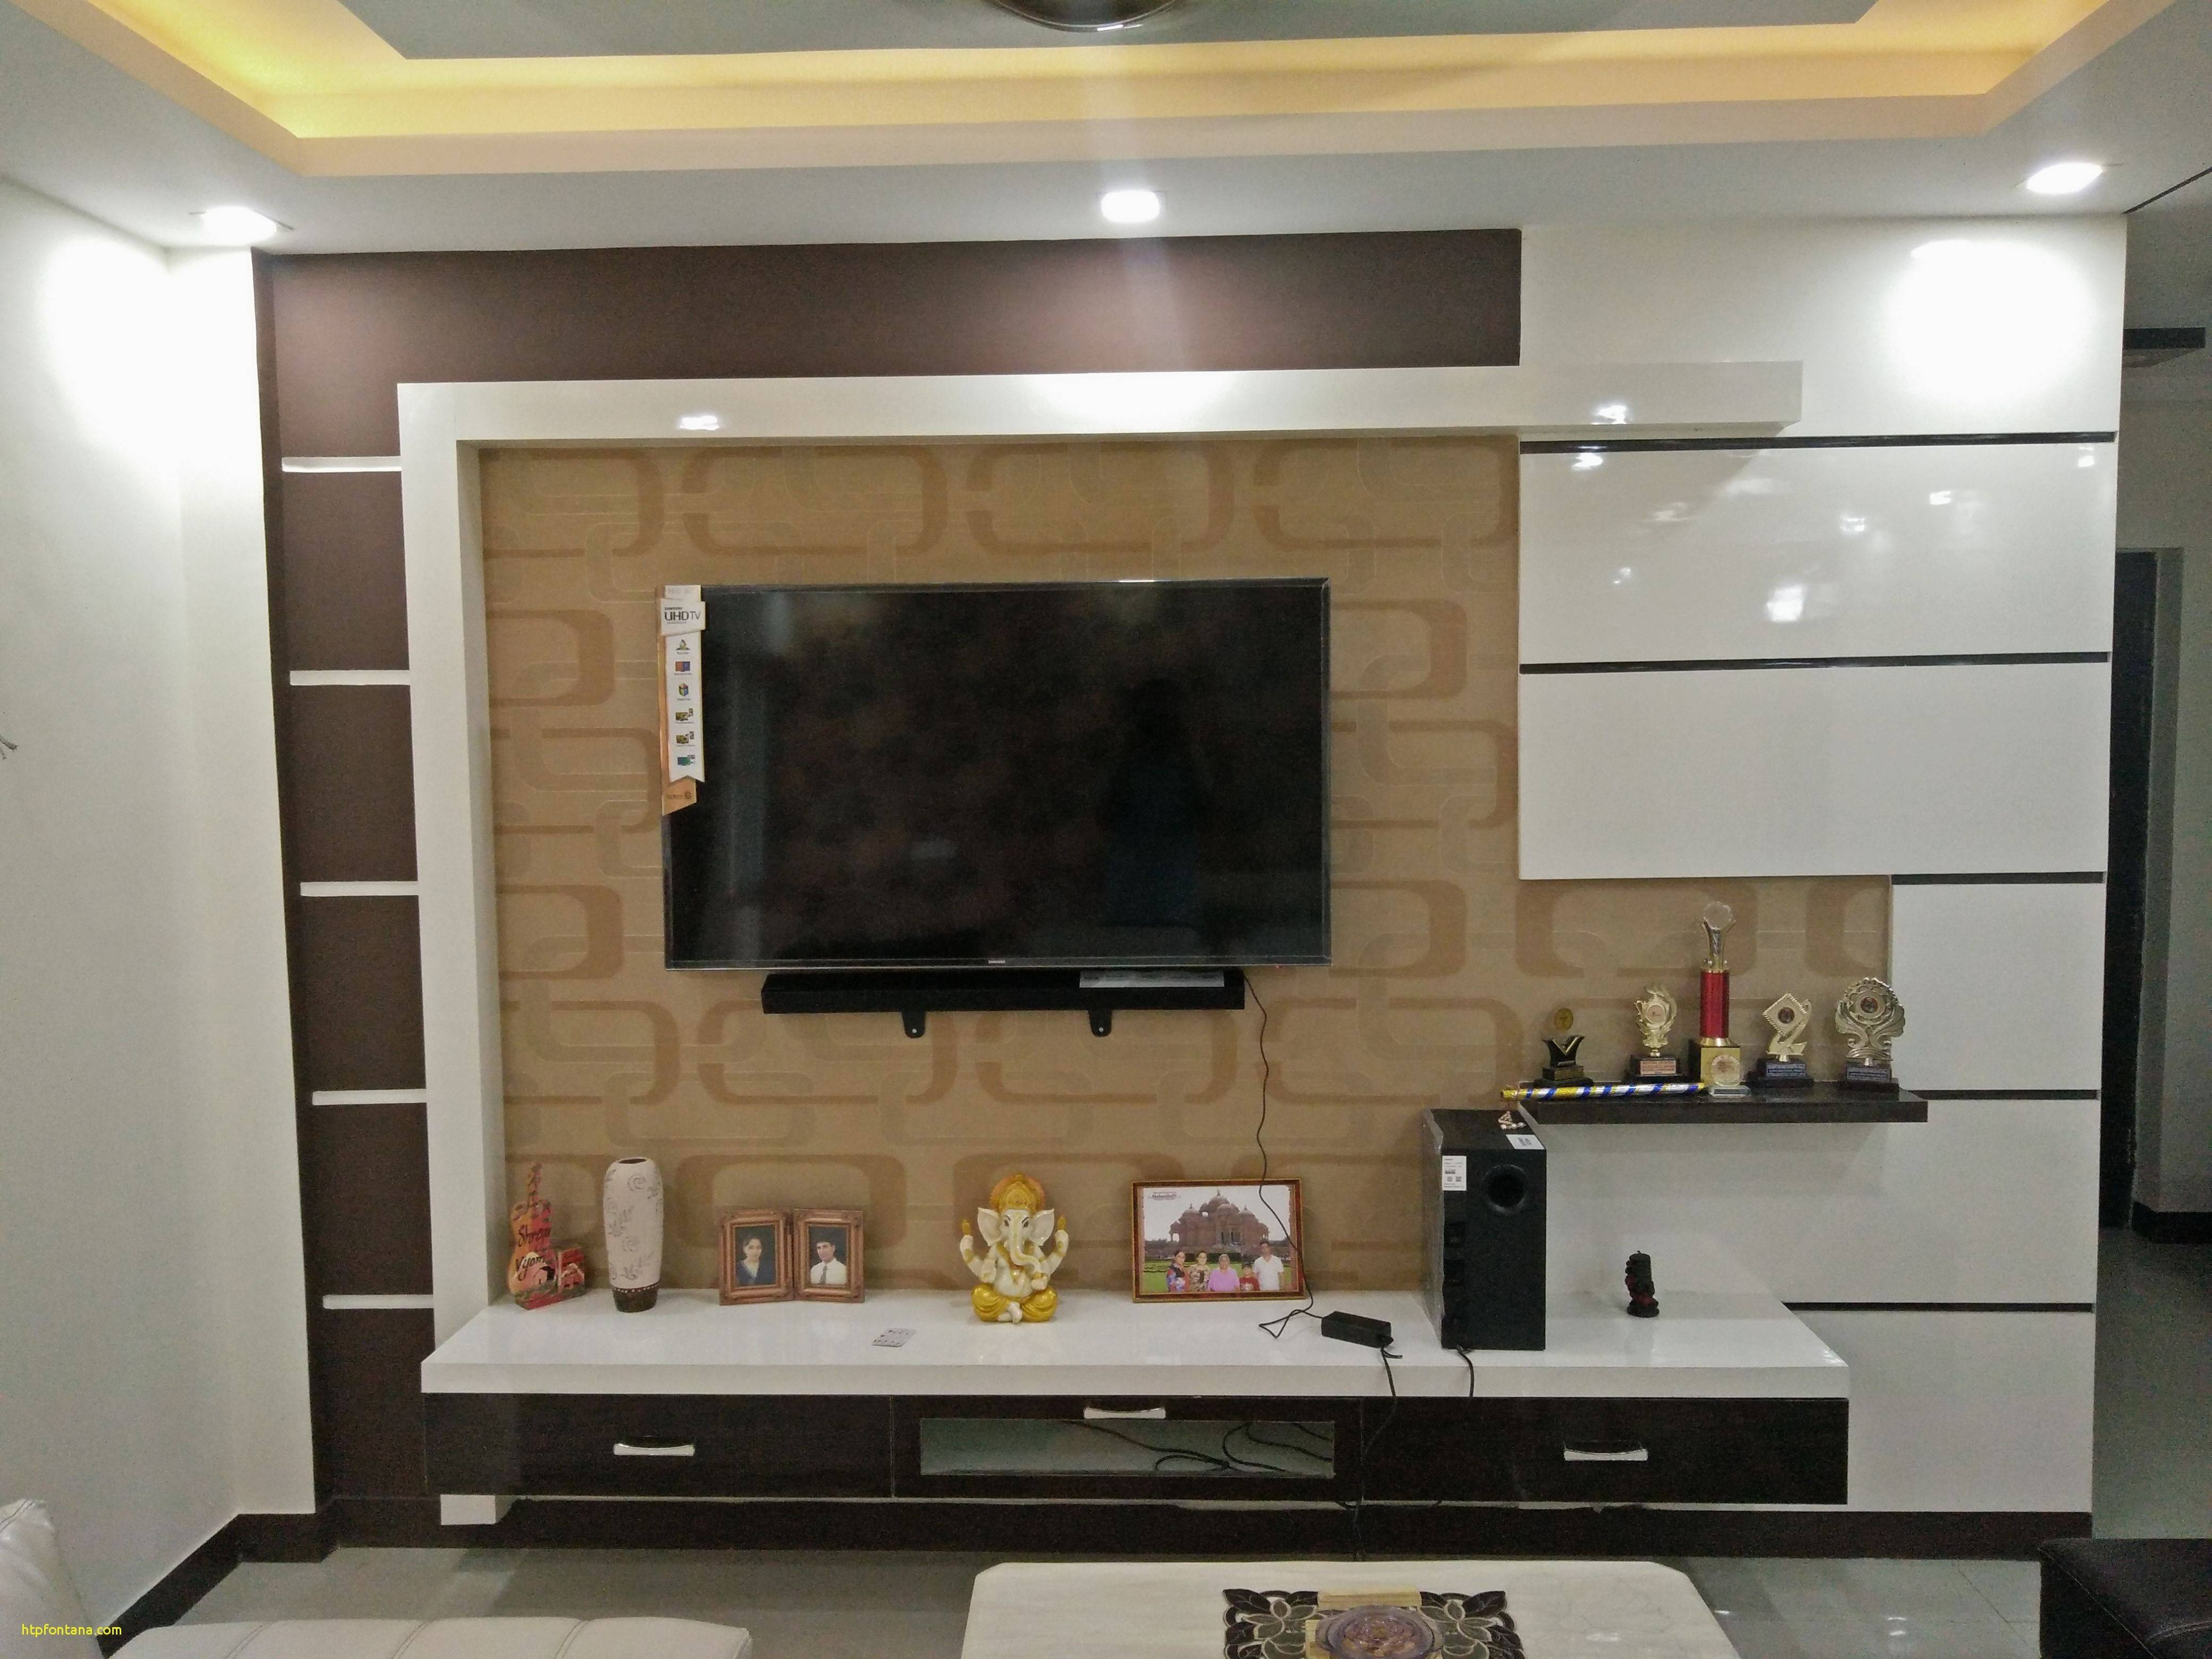 kitchen cabinets colors ideas new ideas for tv stand top kitchen cabinets stunning cabinet 0d bright gallery of kitchen cabinets colors ideas